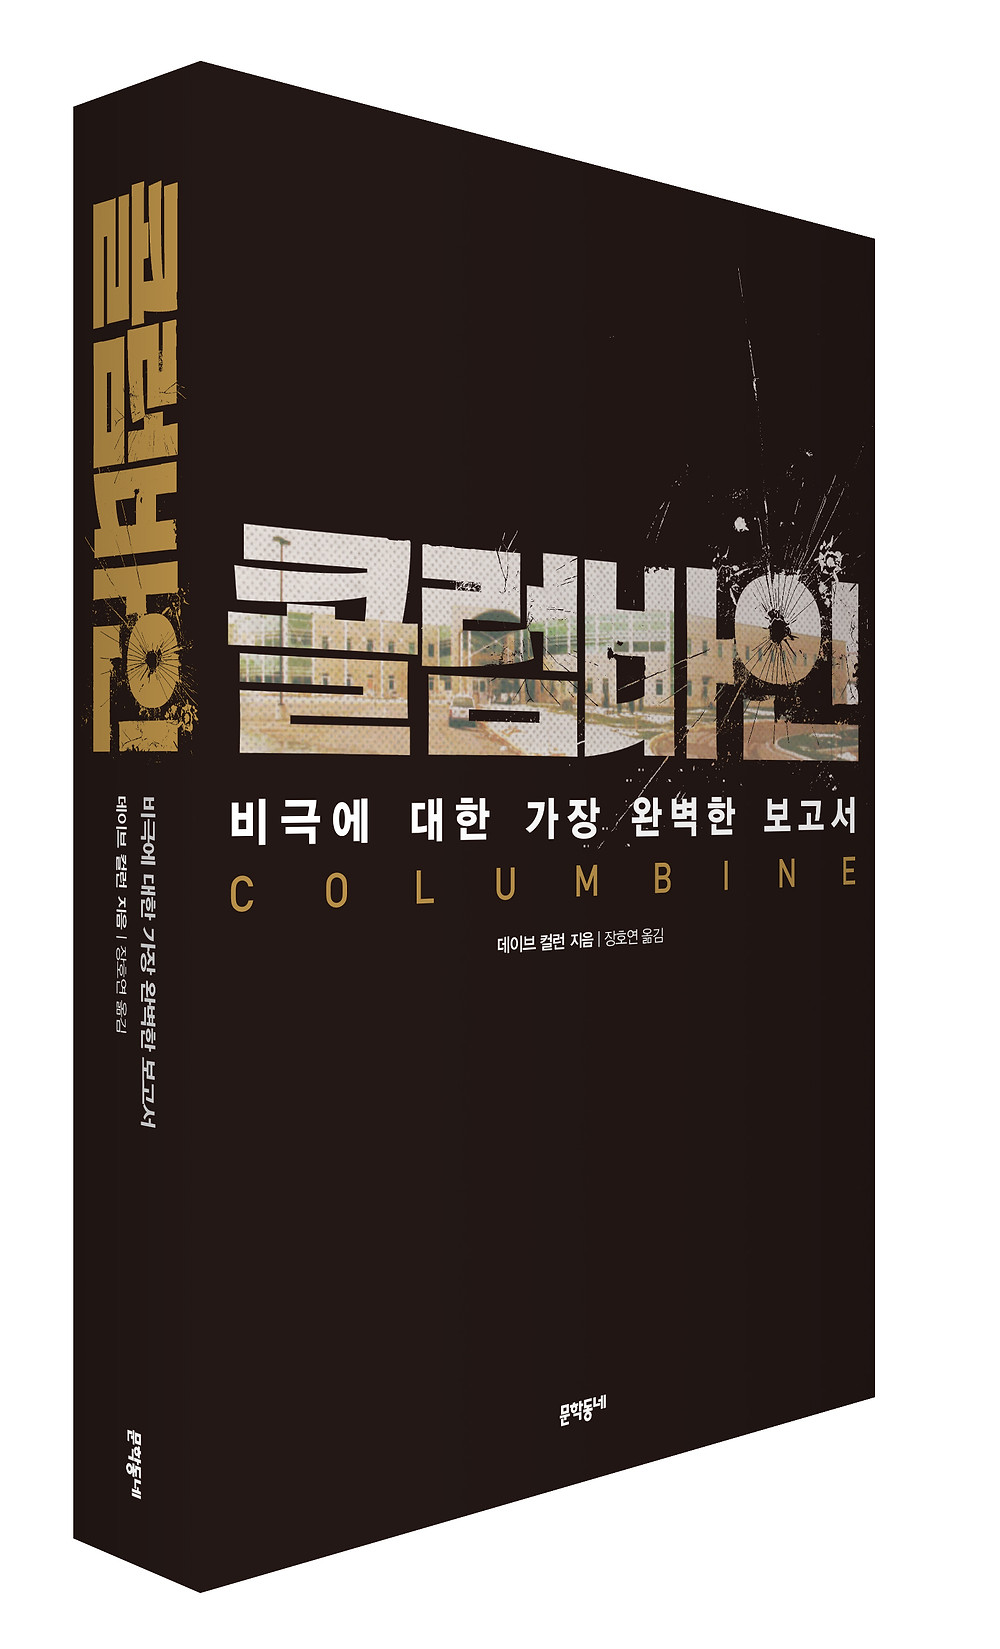 Columbine Korean translation Korea Dave Cullen school shooting